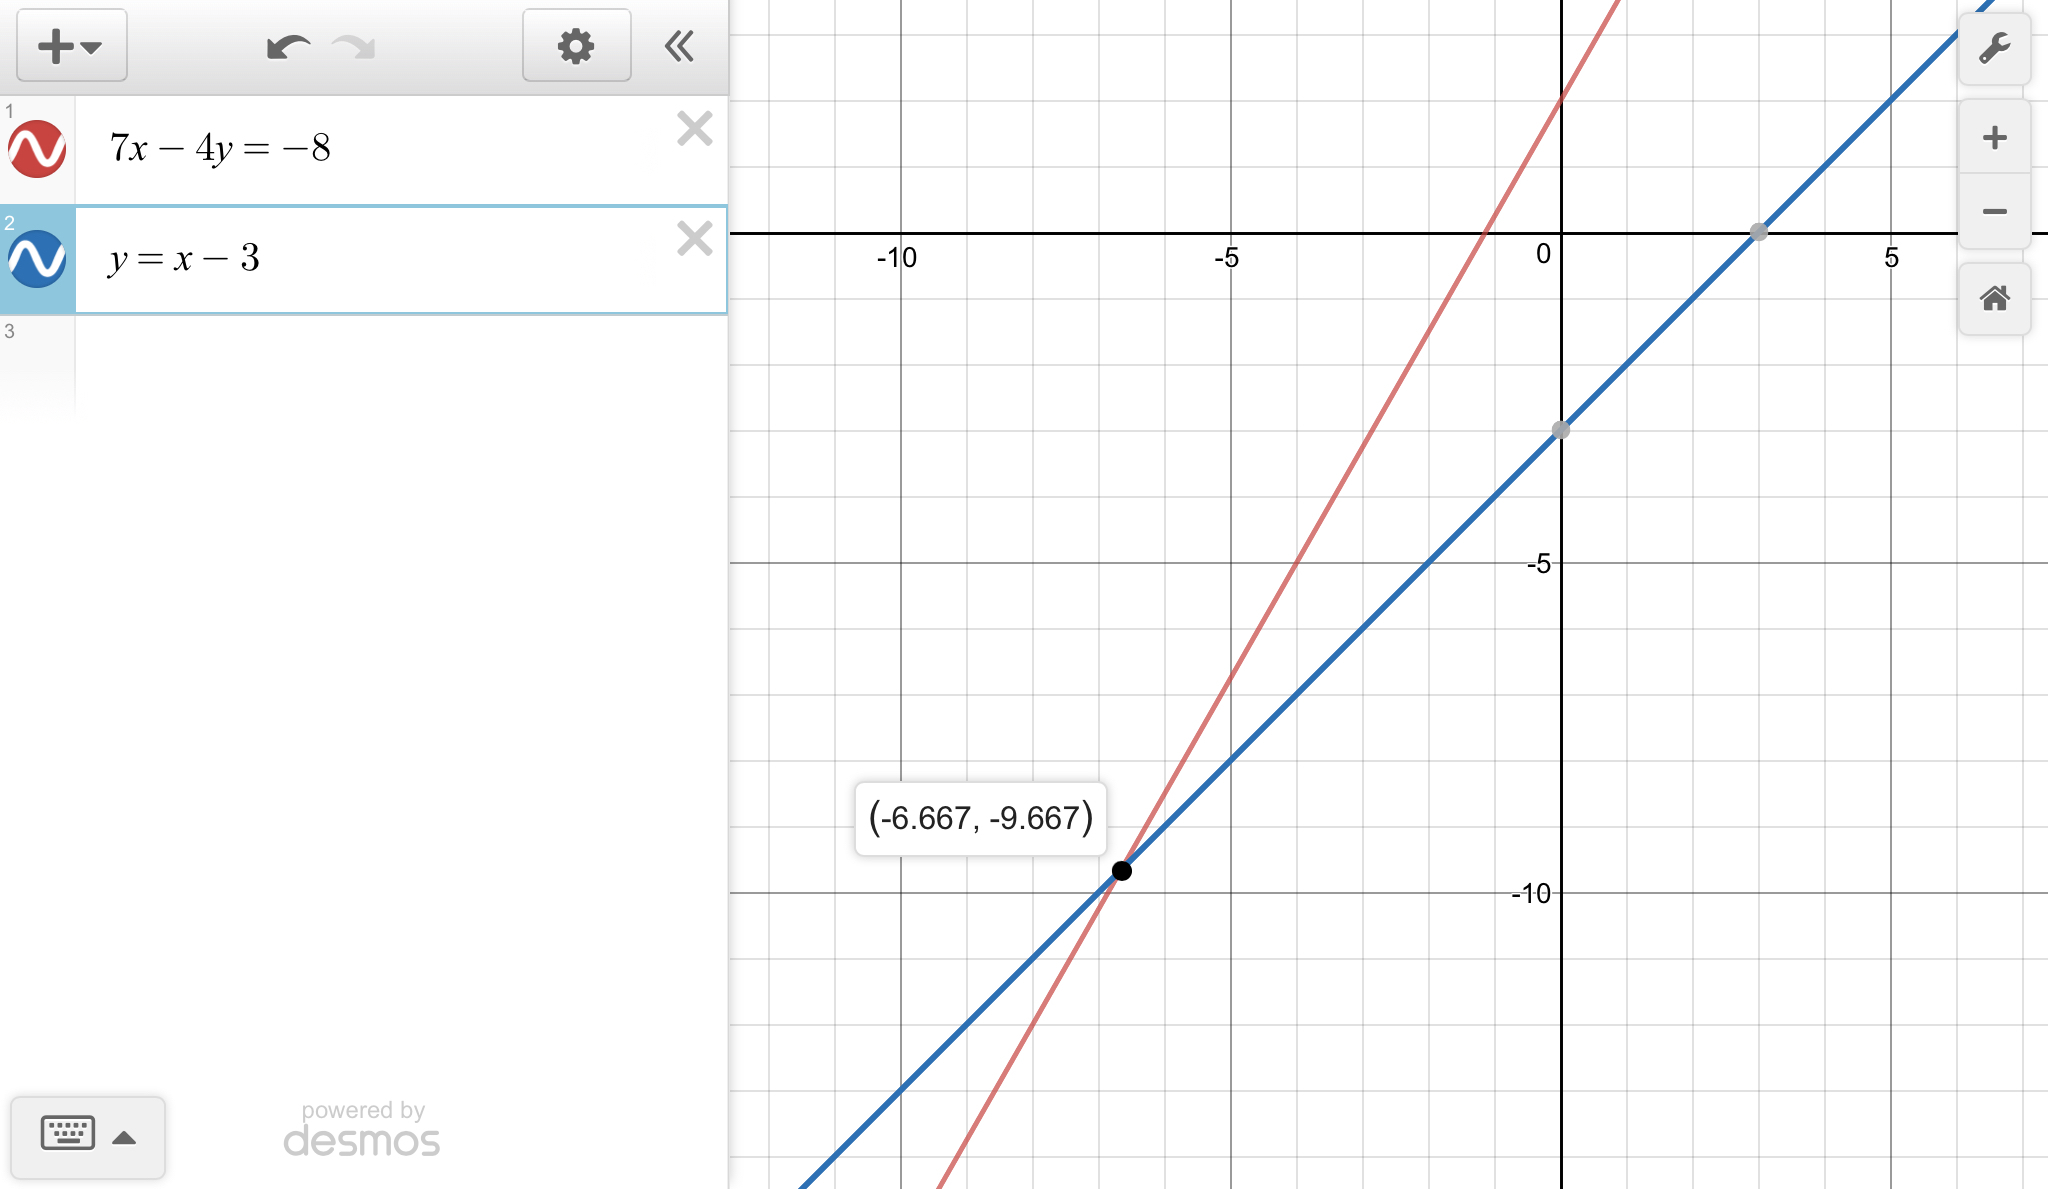 Shannon Graphed The System Of Equations 7x 4y 8 Y X